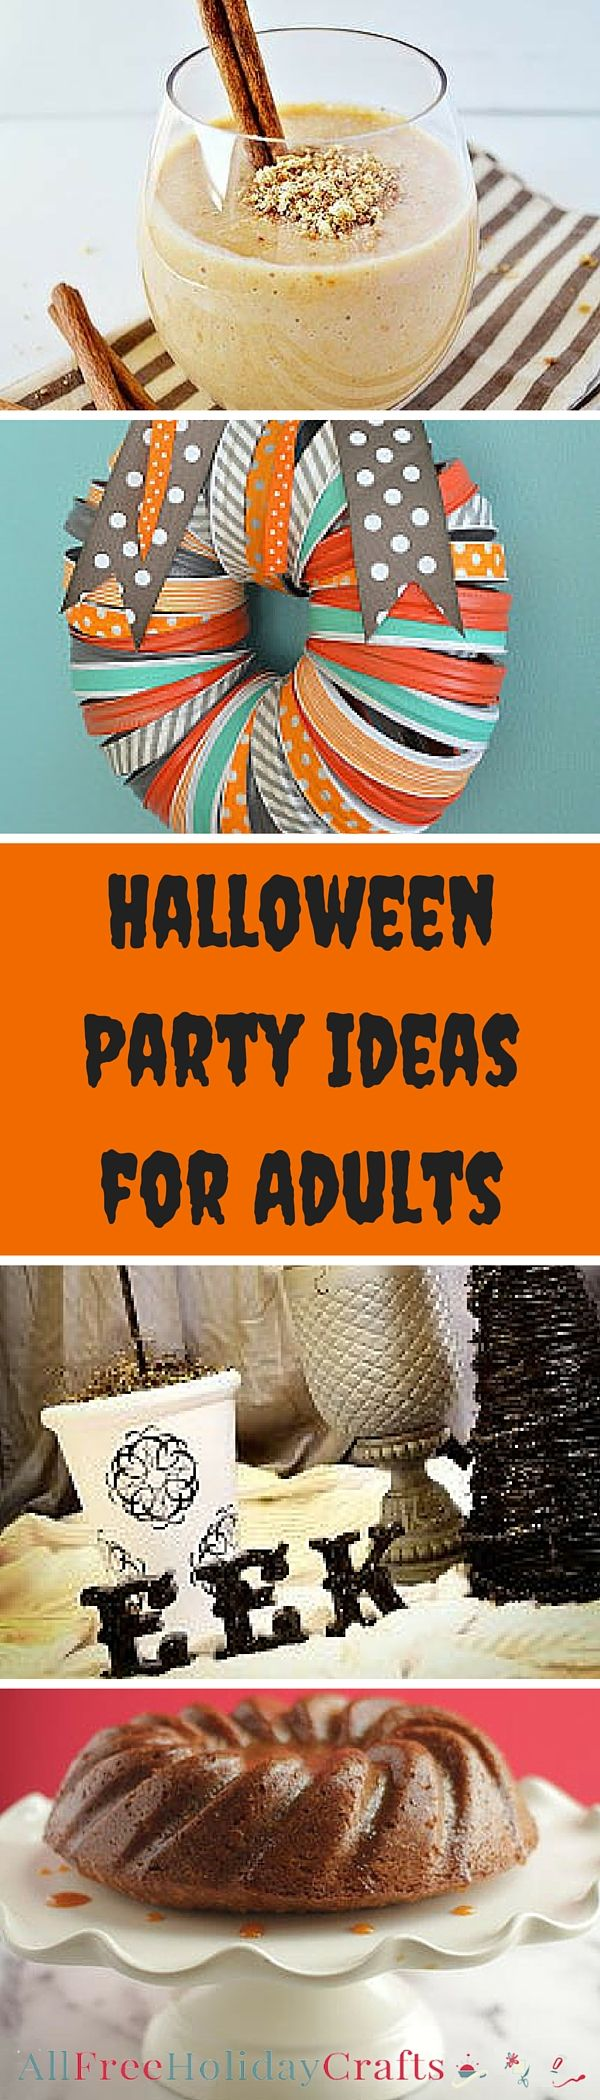 You have outgrown trick-or-treating, but that doesn't mean you can't celebrate Halloween right! With our collection of 45 Halloween Party Ideas for Adults, you can have a lot of fun on All Hallow's Eve. Whether you dress up or not, you can still be creatures of night and party at the witching hour with your friends. With these adult Halloween party ideas, you will be doing the monster mash all night with delicious food and awesome Halloween party decorations.